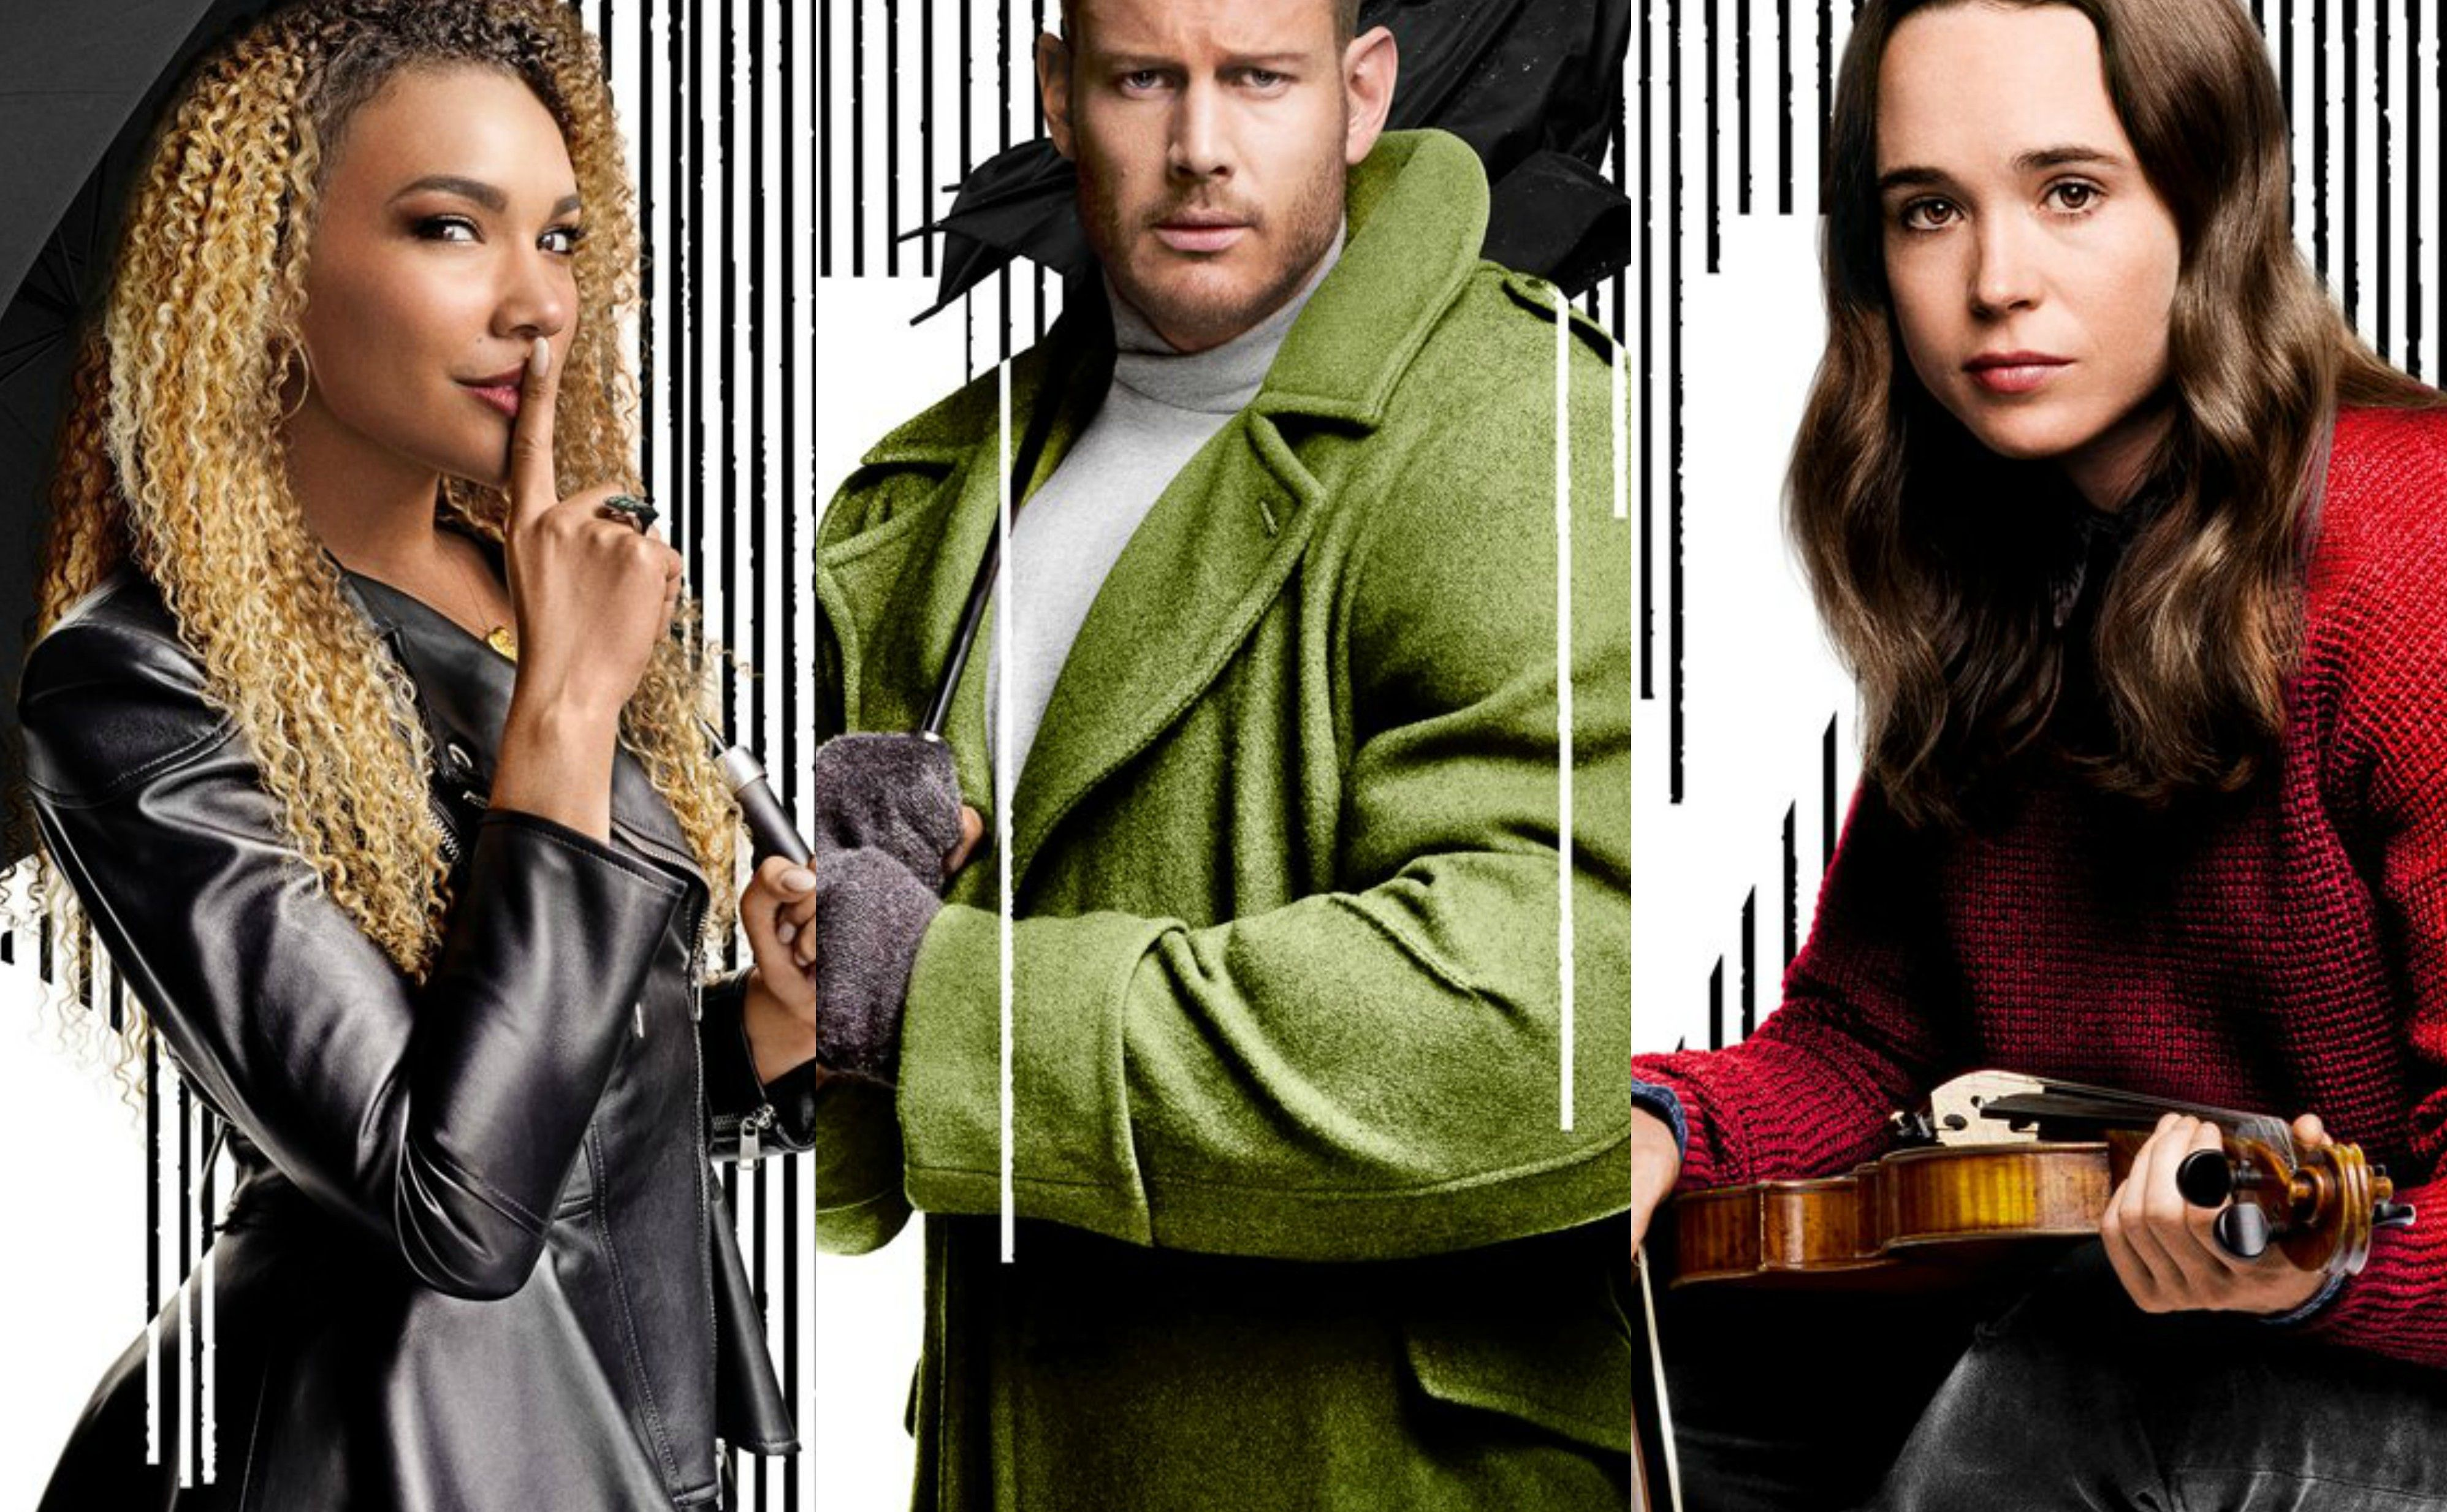 b41d32f29 Netflix's Umbrella Academy Posters Reveal The Family   Collider